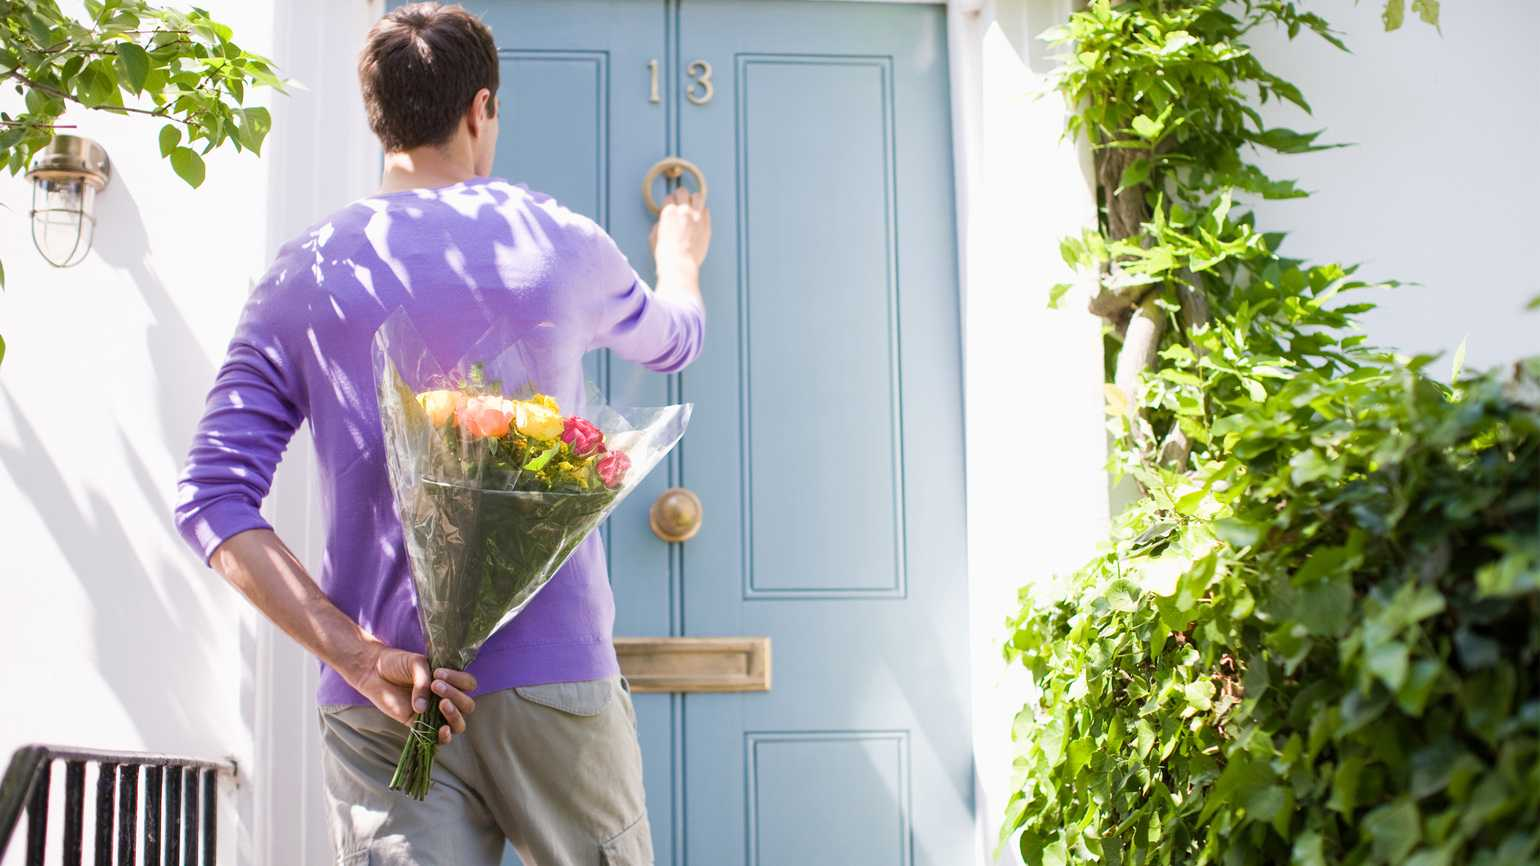 A man knocking on a door with a bouquet of flowers behind his back on a Spring day.